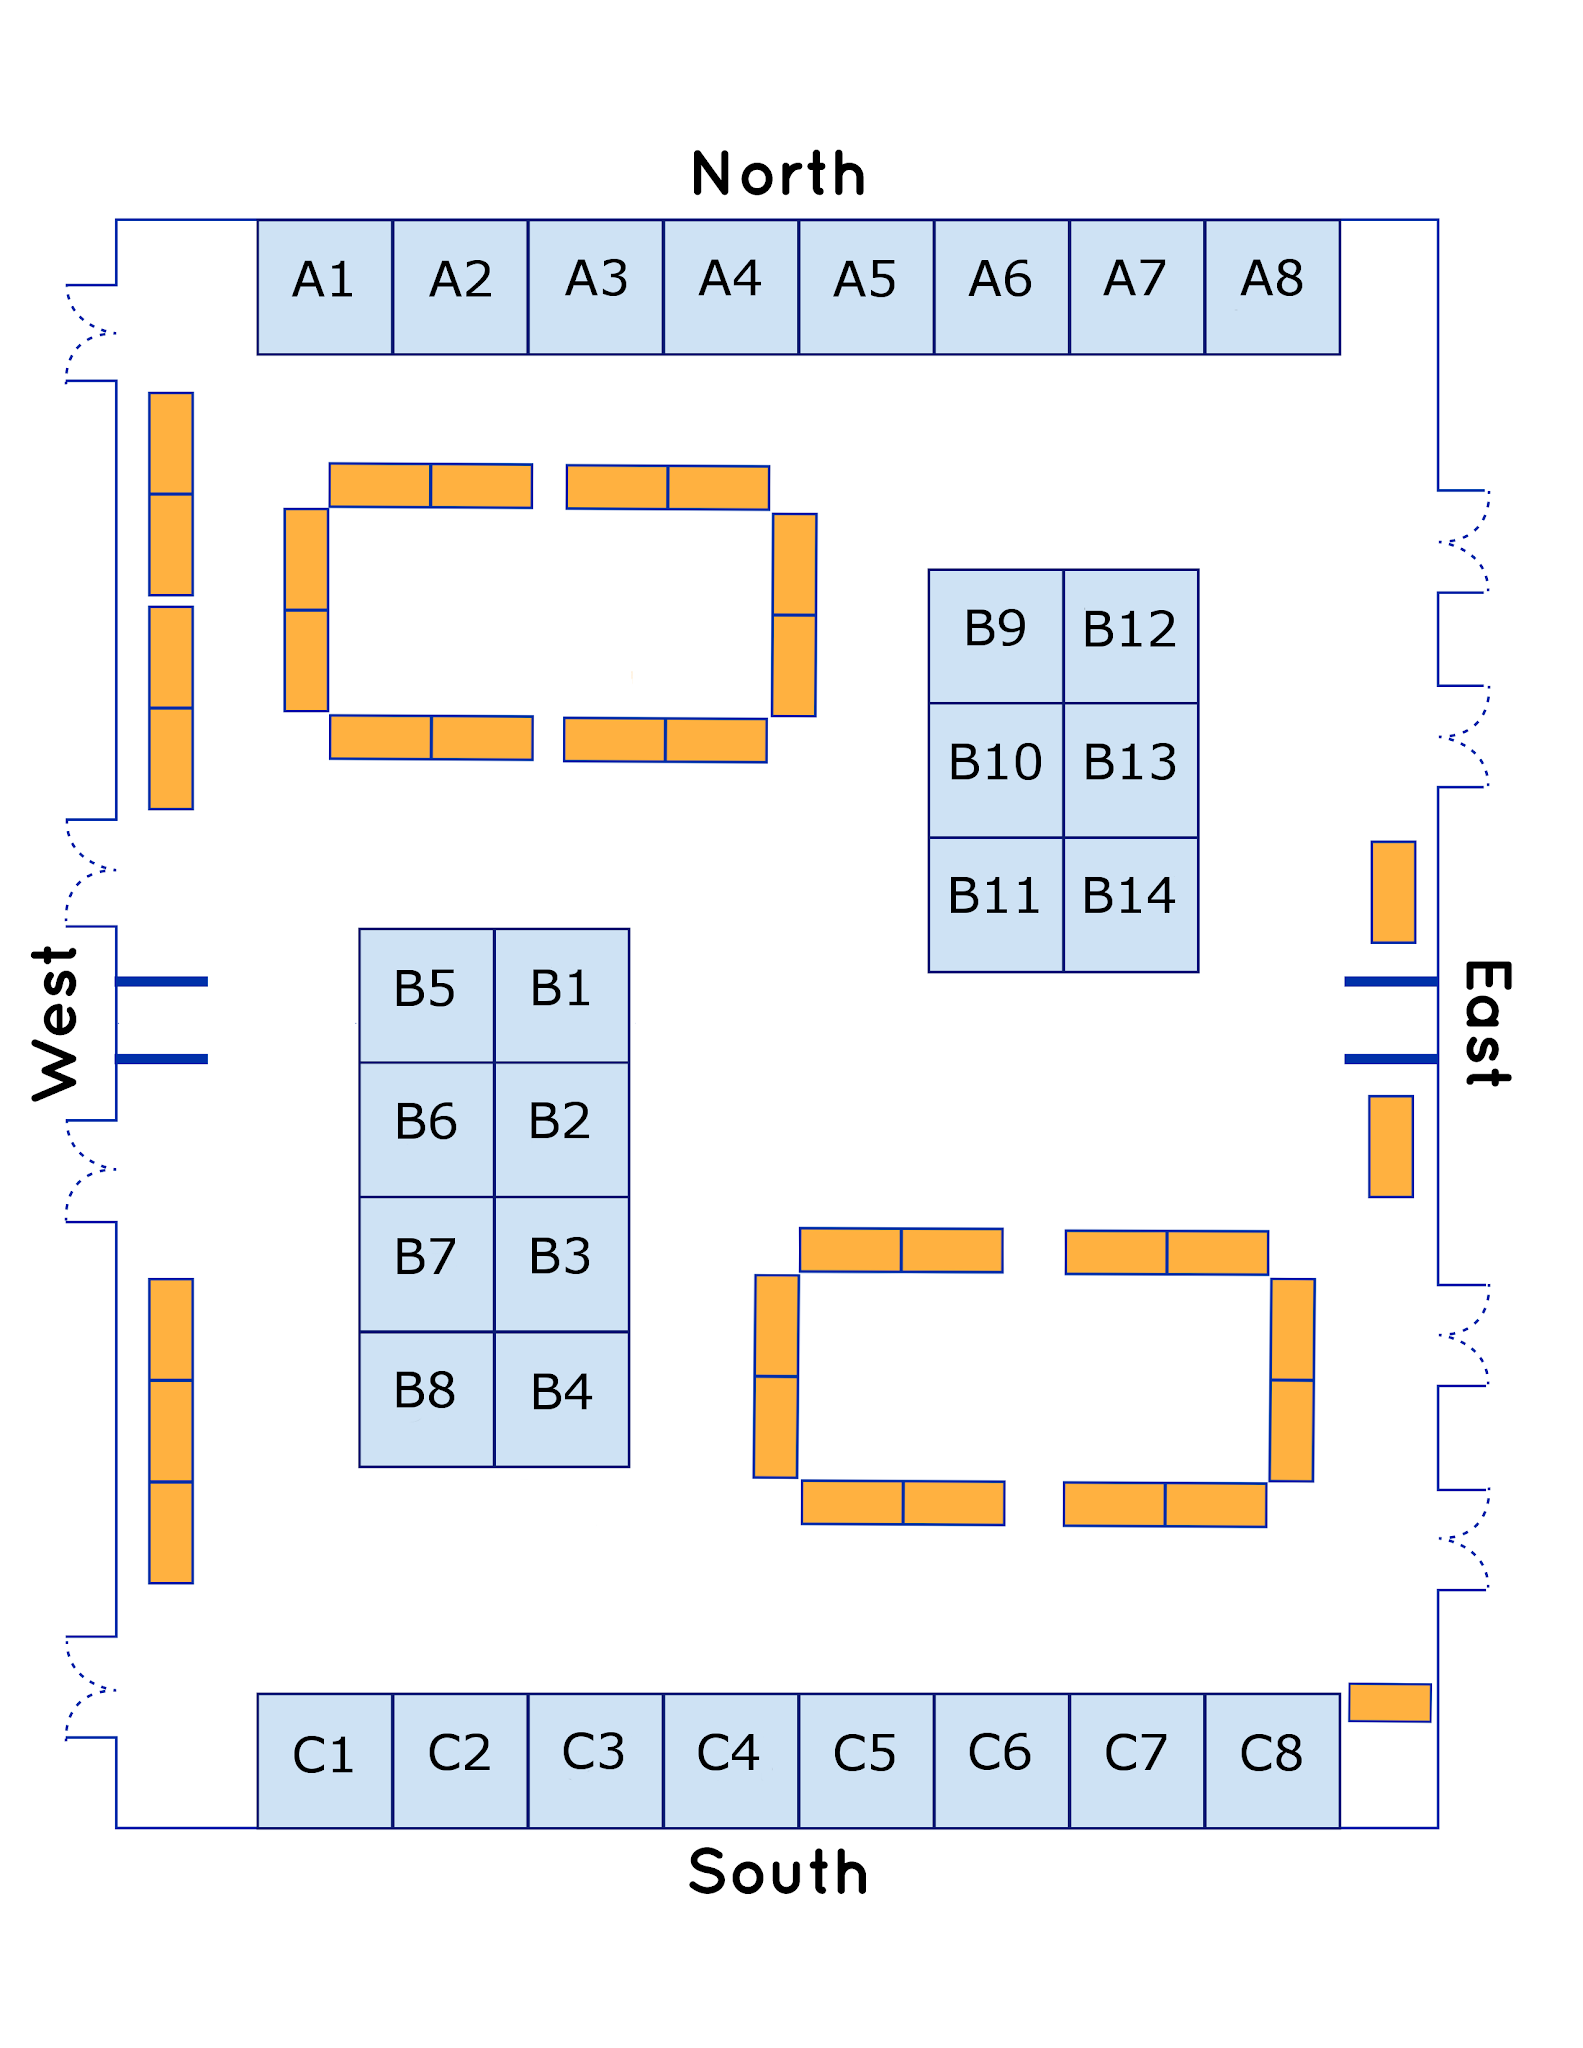 Oriented with booths in section A as North/waterfront